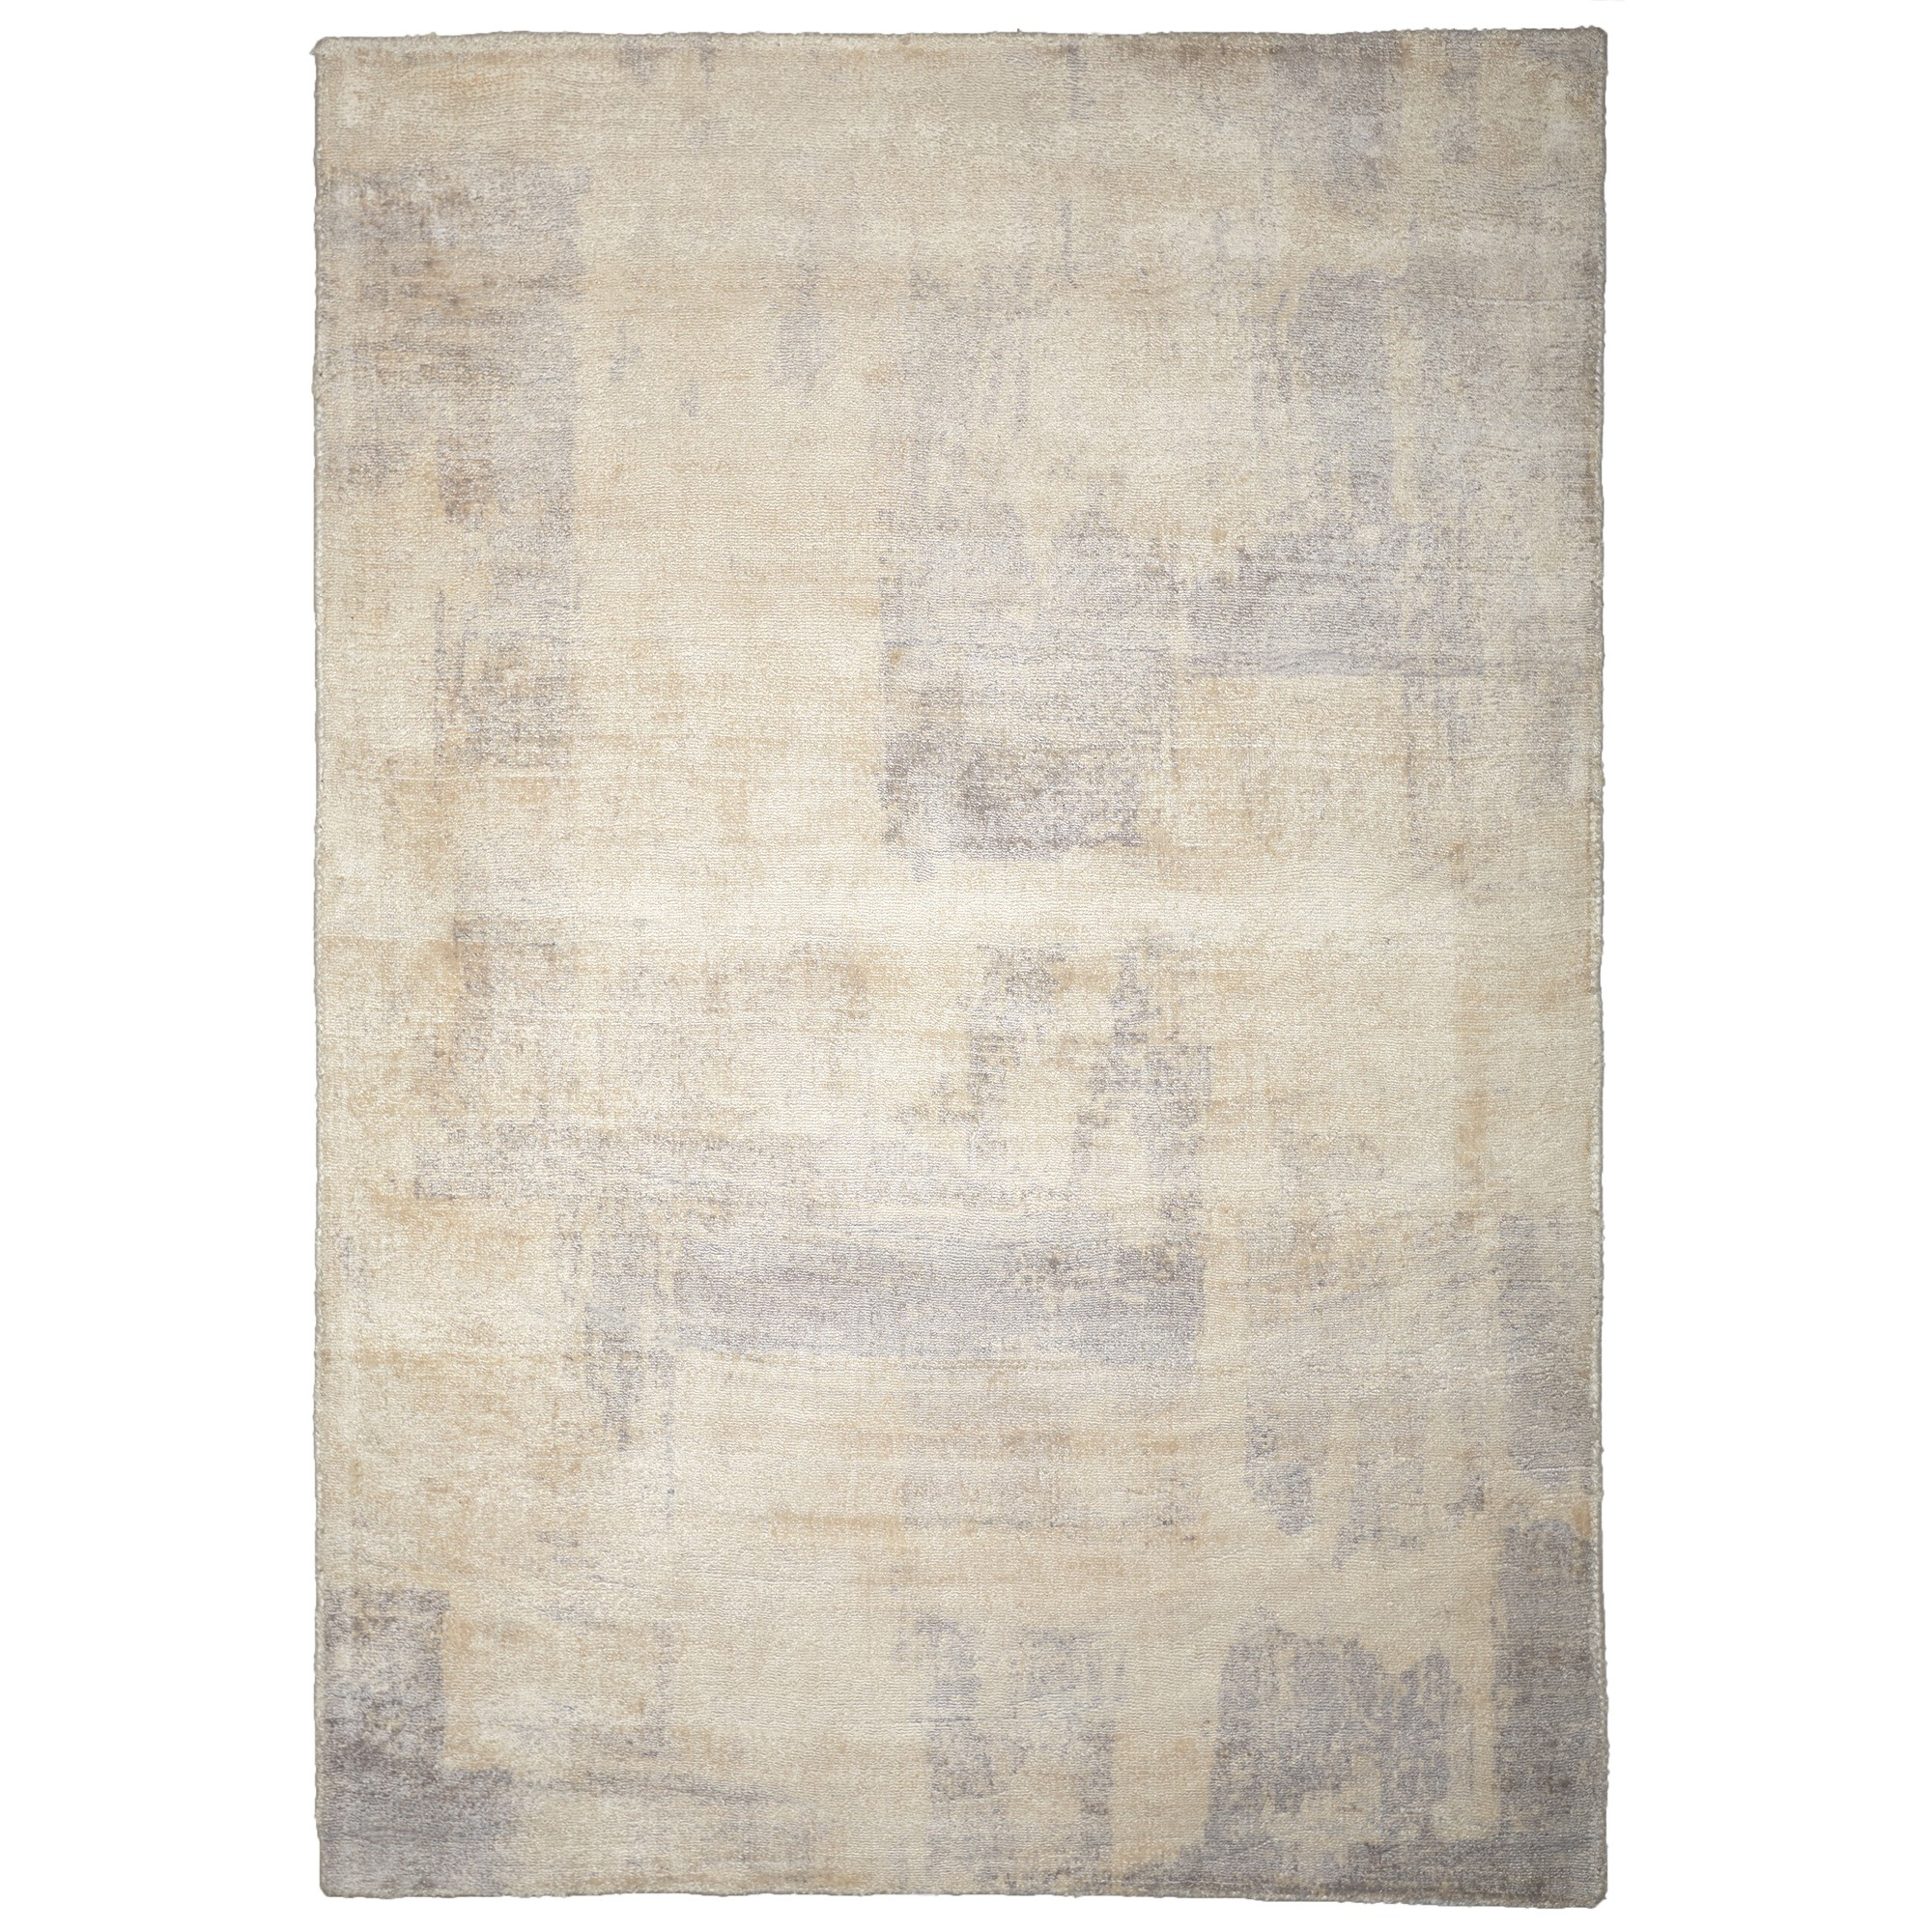 Willows No.678 Transitional Rug, 280x180cm